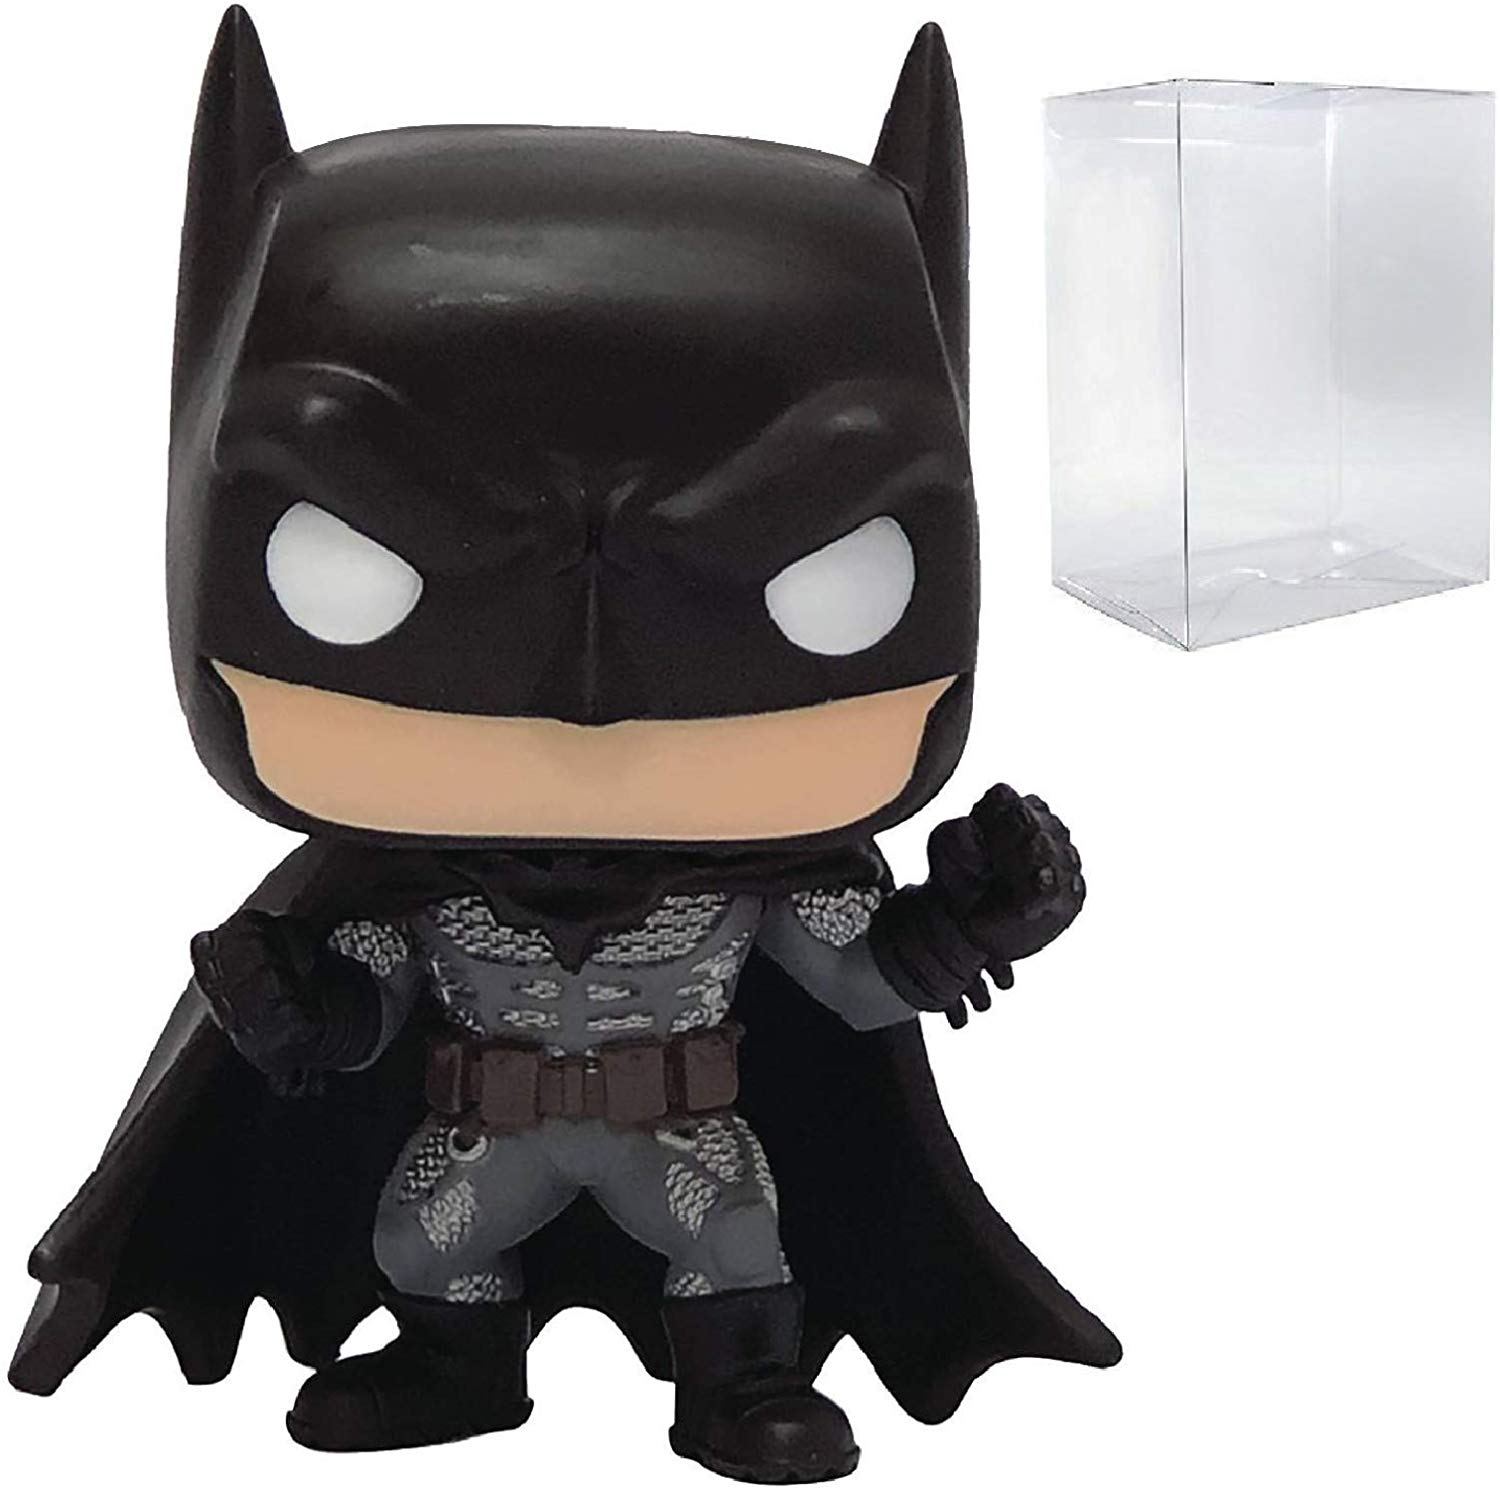 https://www.amazon.co.uk/DC-Comics-Exclusive-Compatible-Protector/dp/B07WQQH6PW/ref=sr_1_99?keywords=batman&qid=1575356357&sr=8-99